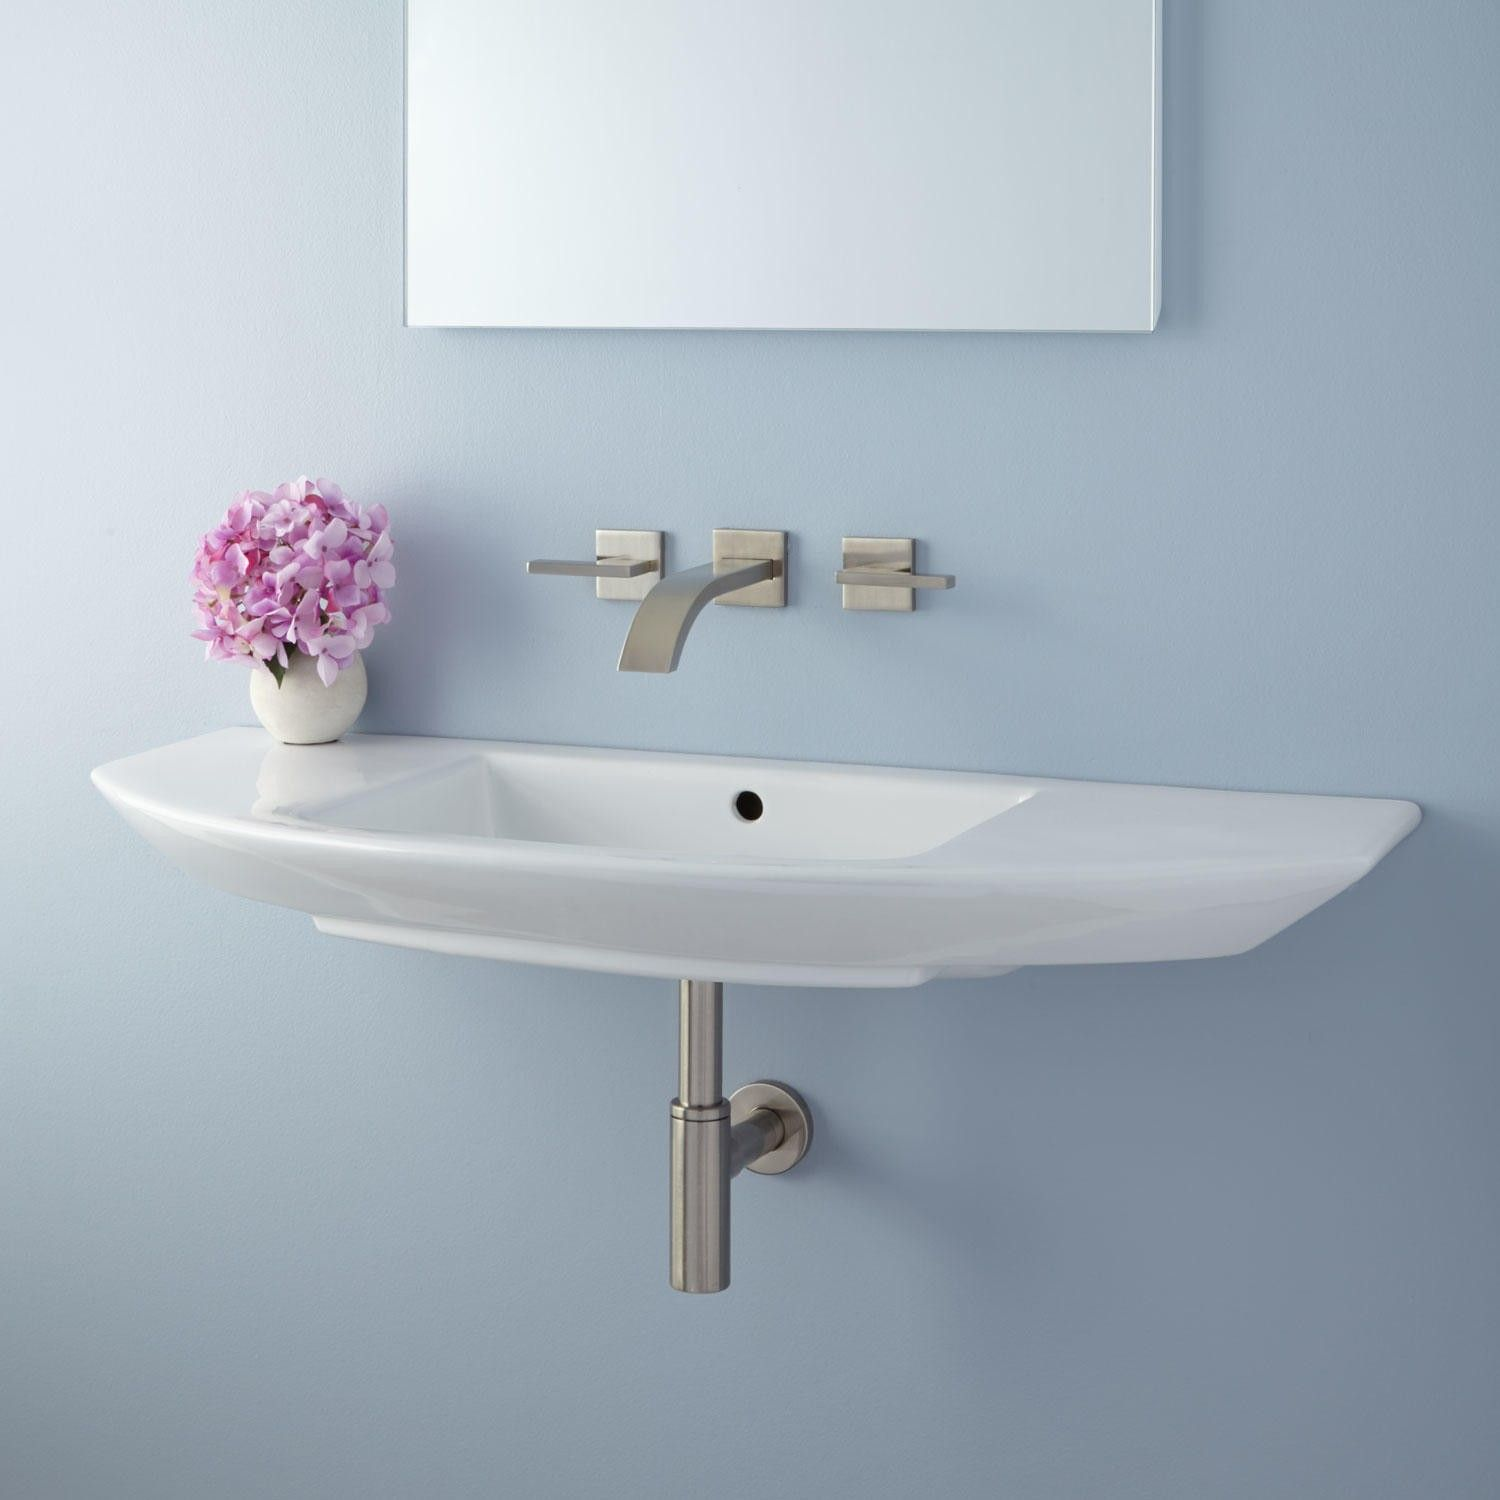 Chelsey Wall Mount Bathroom Sink Wall Mount Sinks Bathroom Sinks Bathroom Small Bathroom Sinks Wall Mounted Bathroom Sinks Wall Mounted Bathroom Cabinets